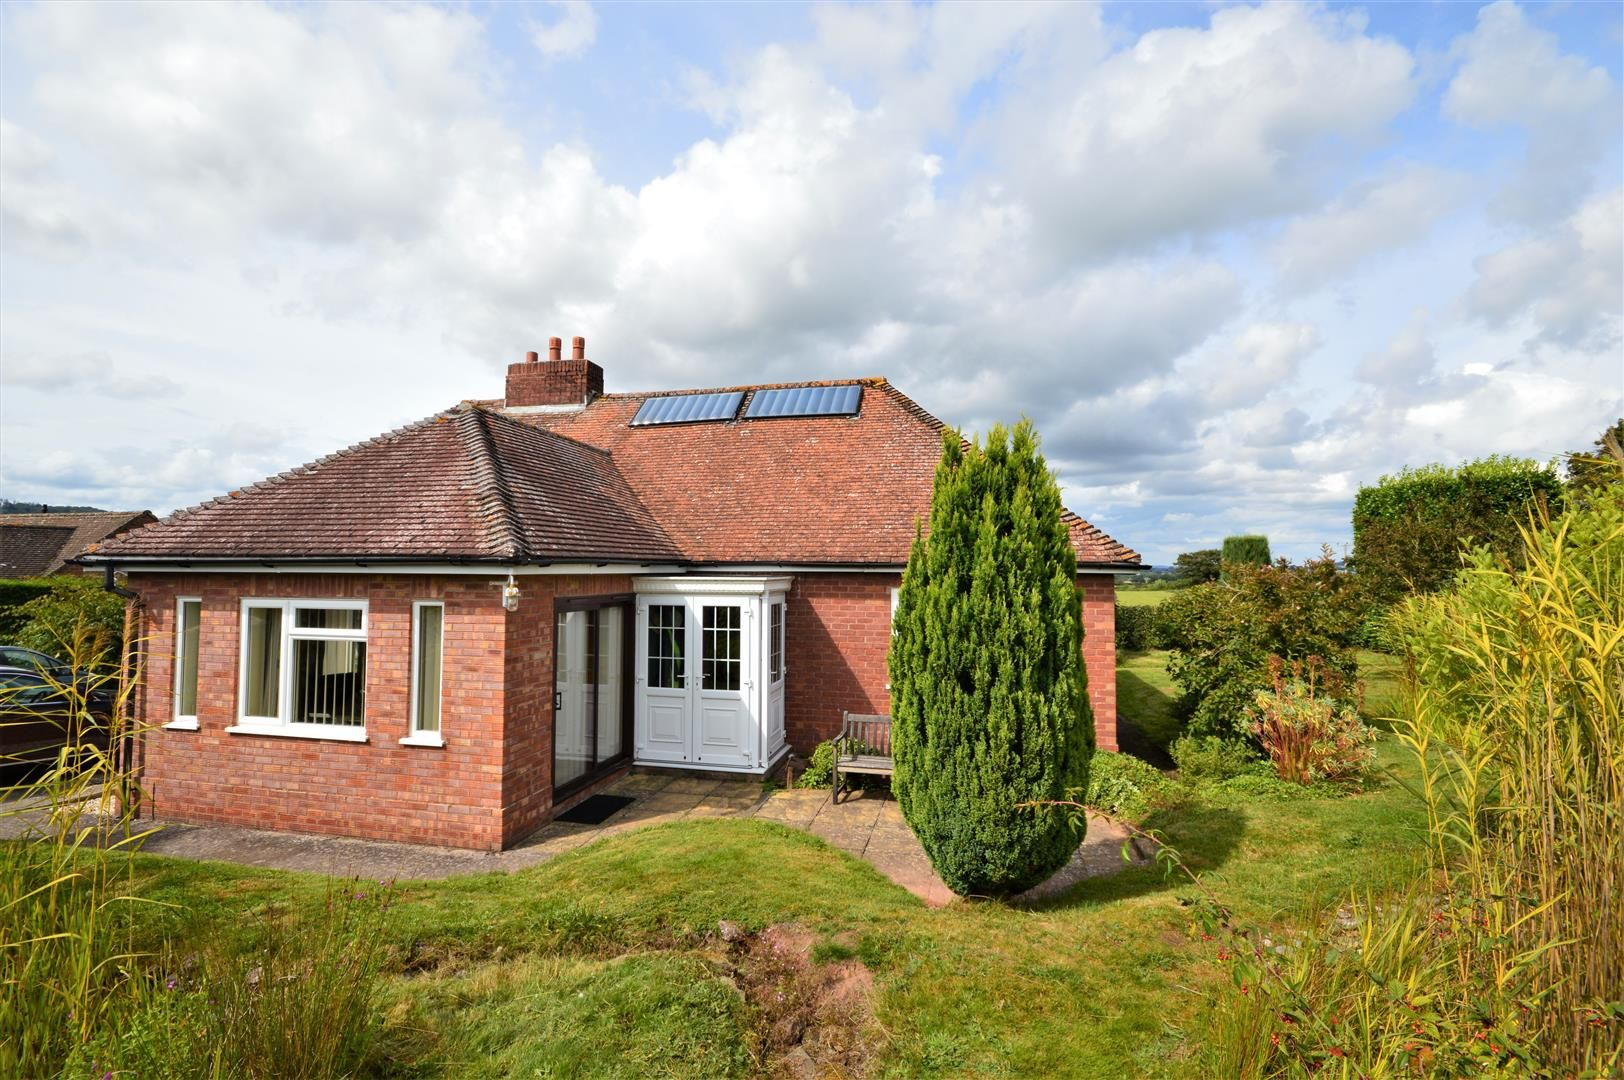 3 bed detached-bungalow for sale in Blakemere, HR2